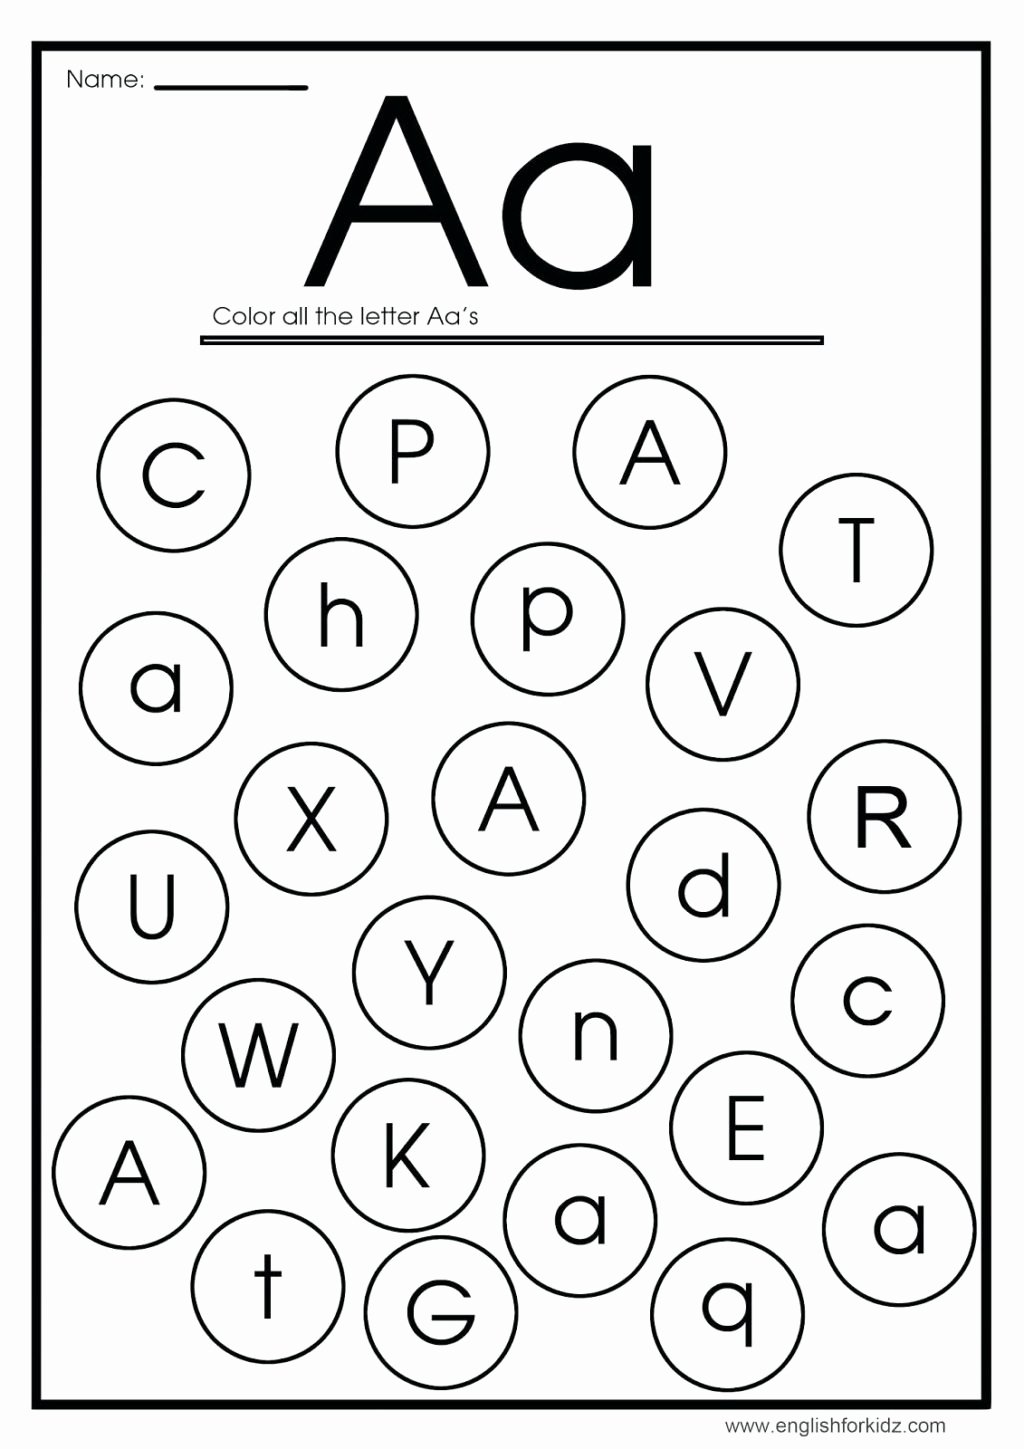 Jolly Phonics Worksheets for Preschoolers Unique Worksheet Reading Grade Free Worksheets Printable Hmh Into